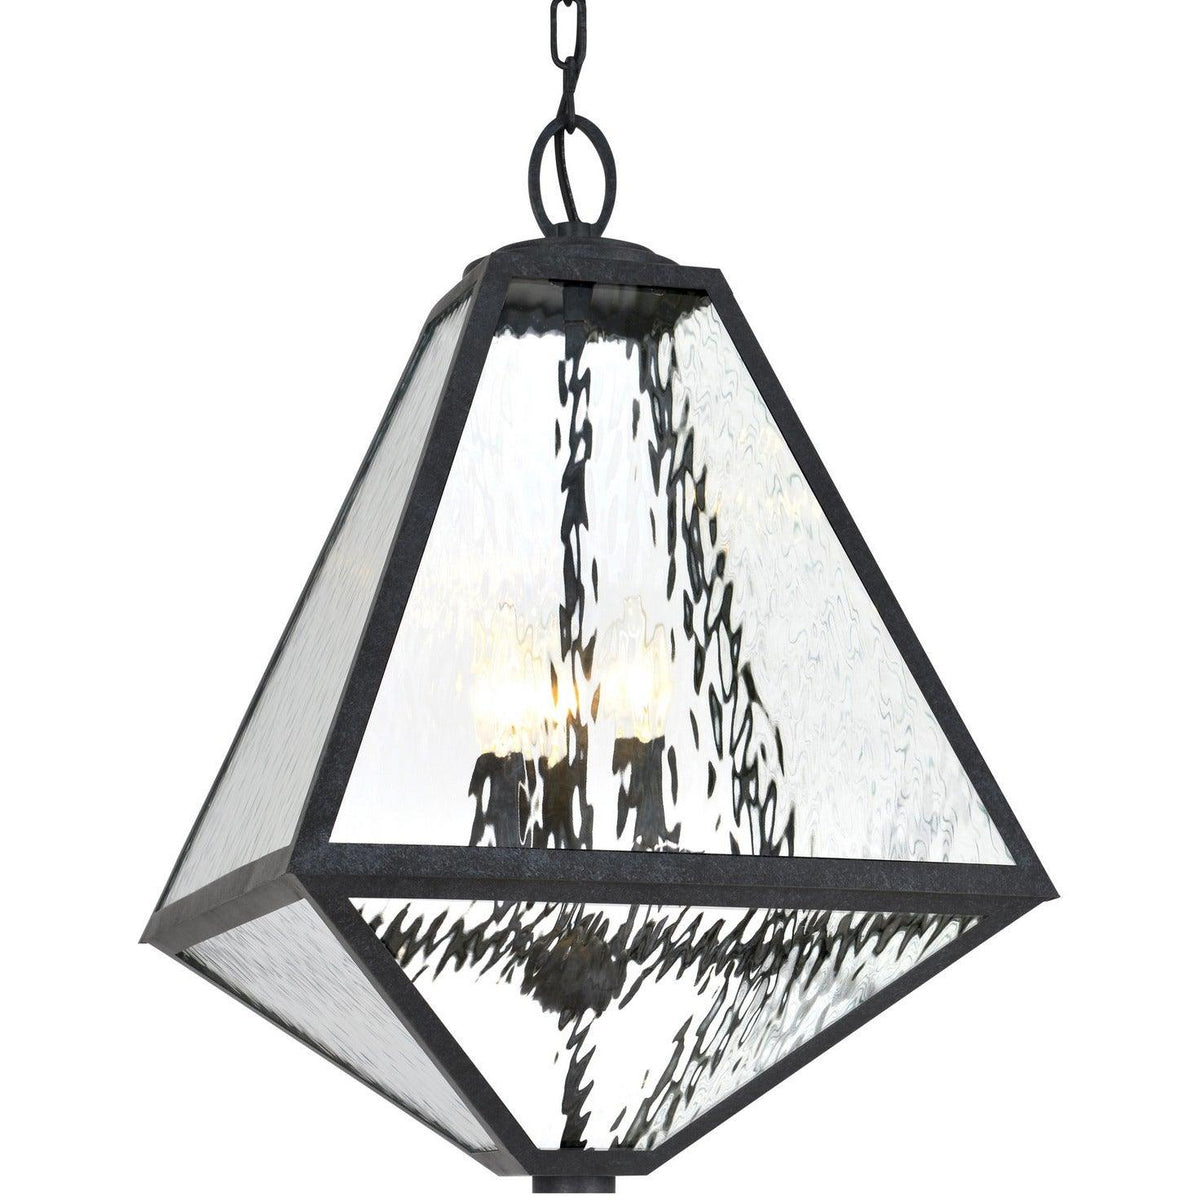 Crystorama - GLA-9705-WT-BC - Three Light Outdoor Chandelier - Glacier - Black Charcoal